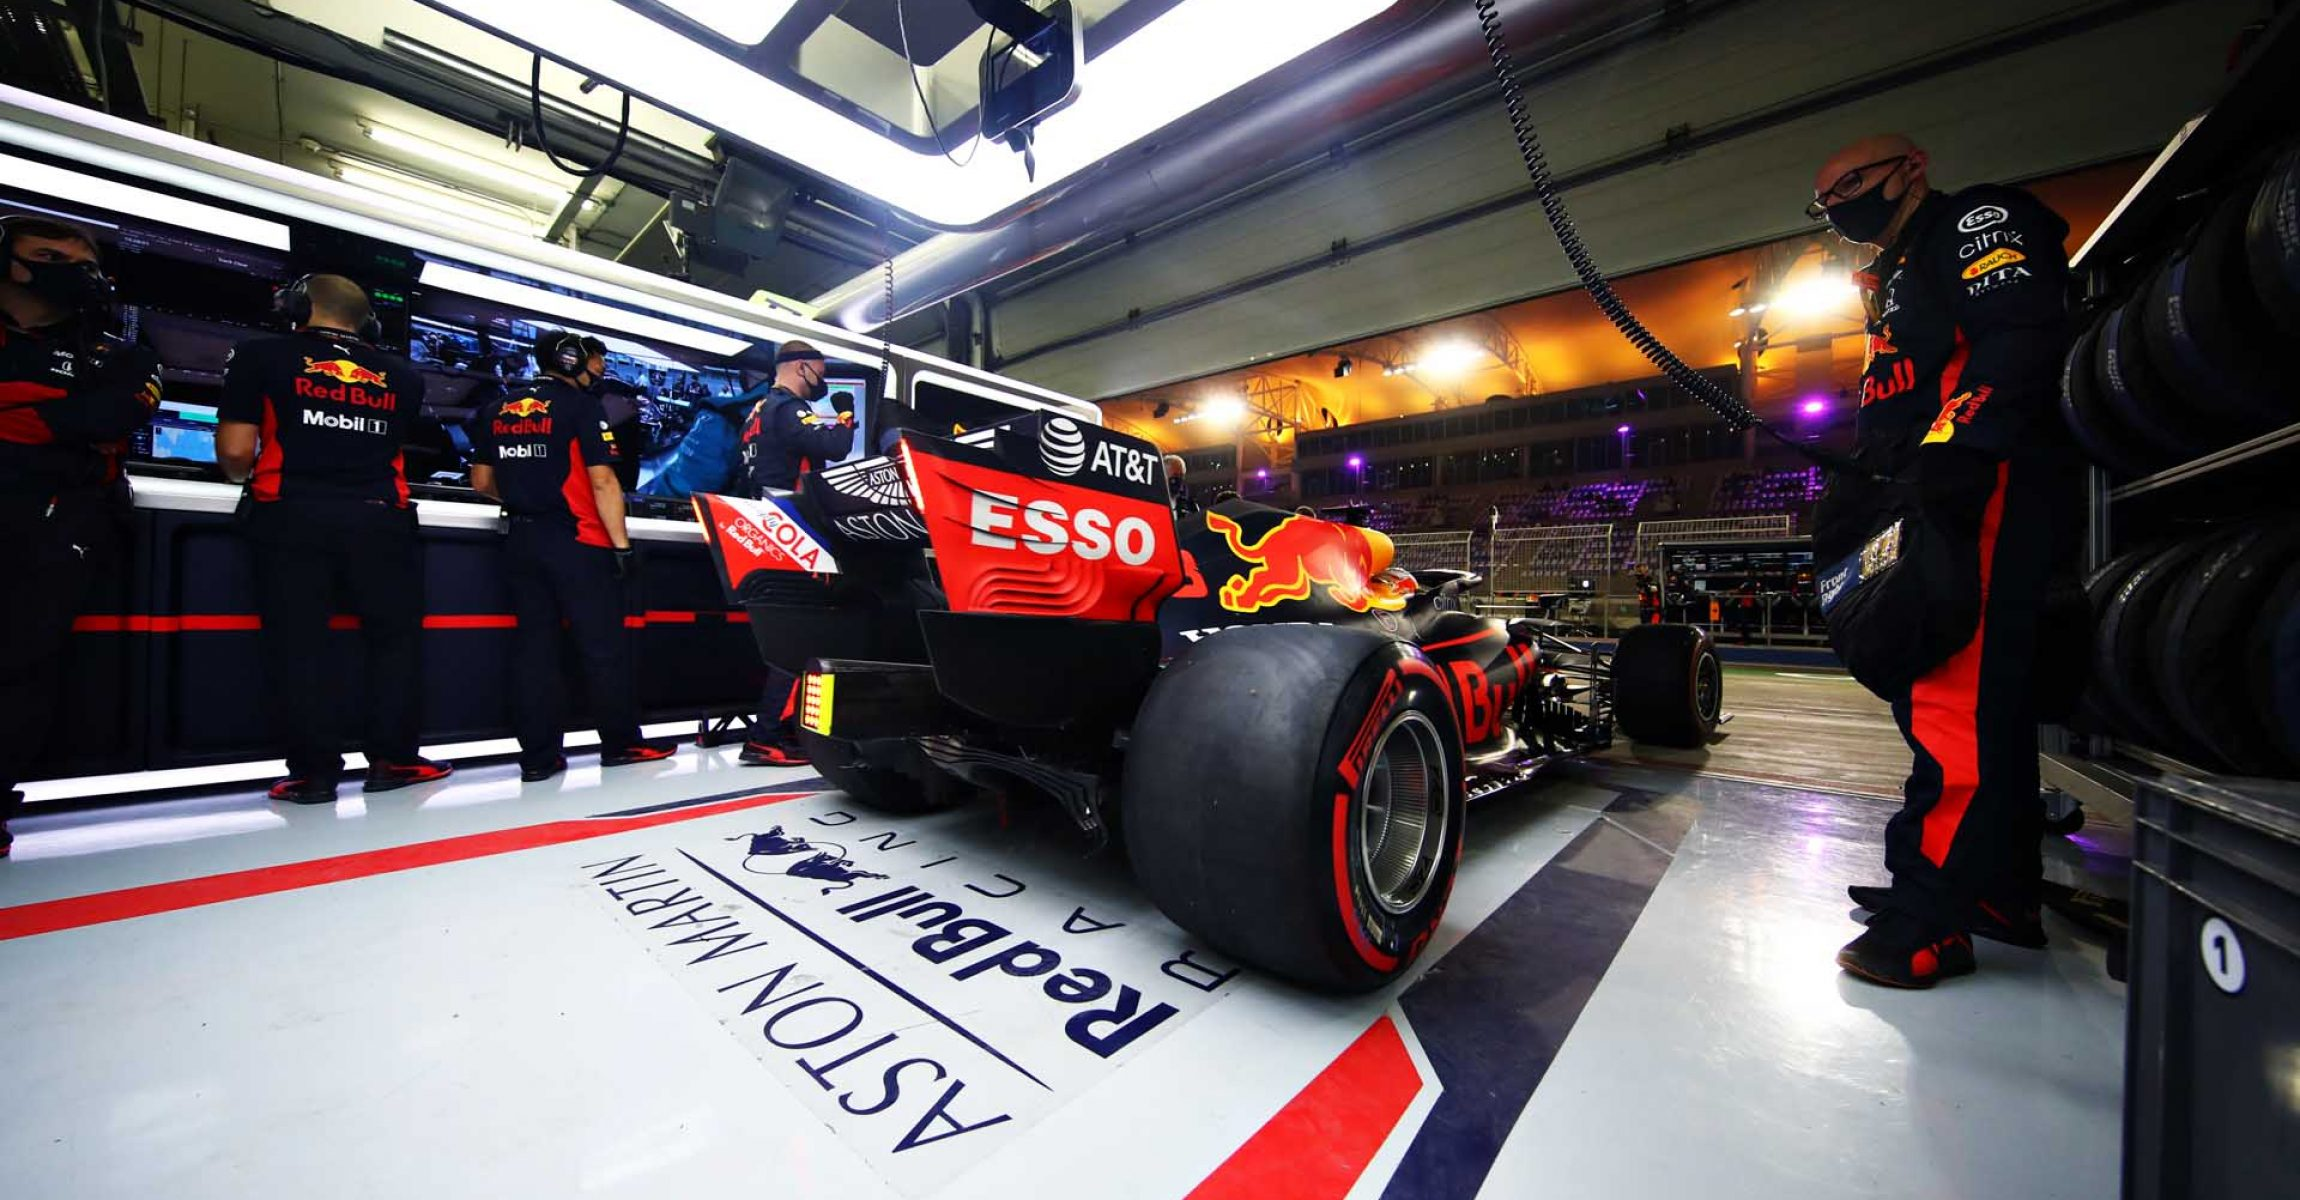 BAHRAIN, BAHRAIN - DECEMBER 06: Max Verstappen of the Netherlands driving the (33) Aston Martin Red Bull Racing RB16 leaves the garage during the F1 Grand Prix of Sakhir at Bahrain International Circuit on December 06, 2020 in Bahrain, Bahrain. (Photo by Mark Thompson/Getty Images)